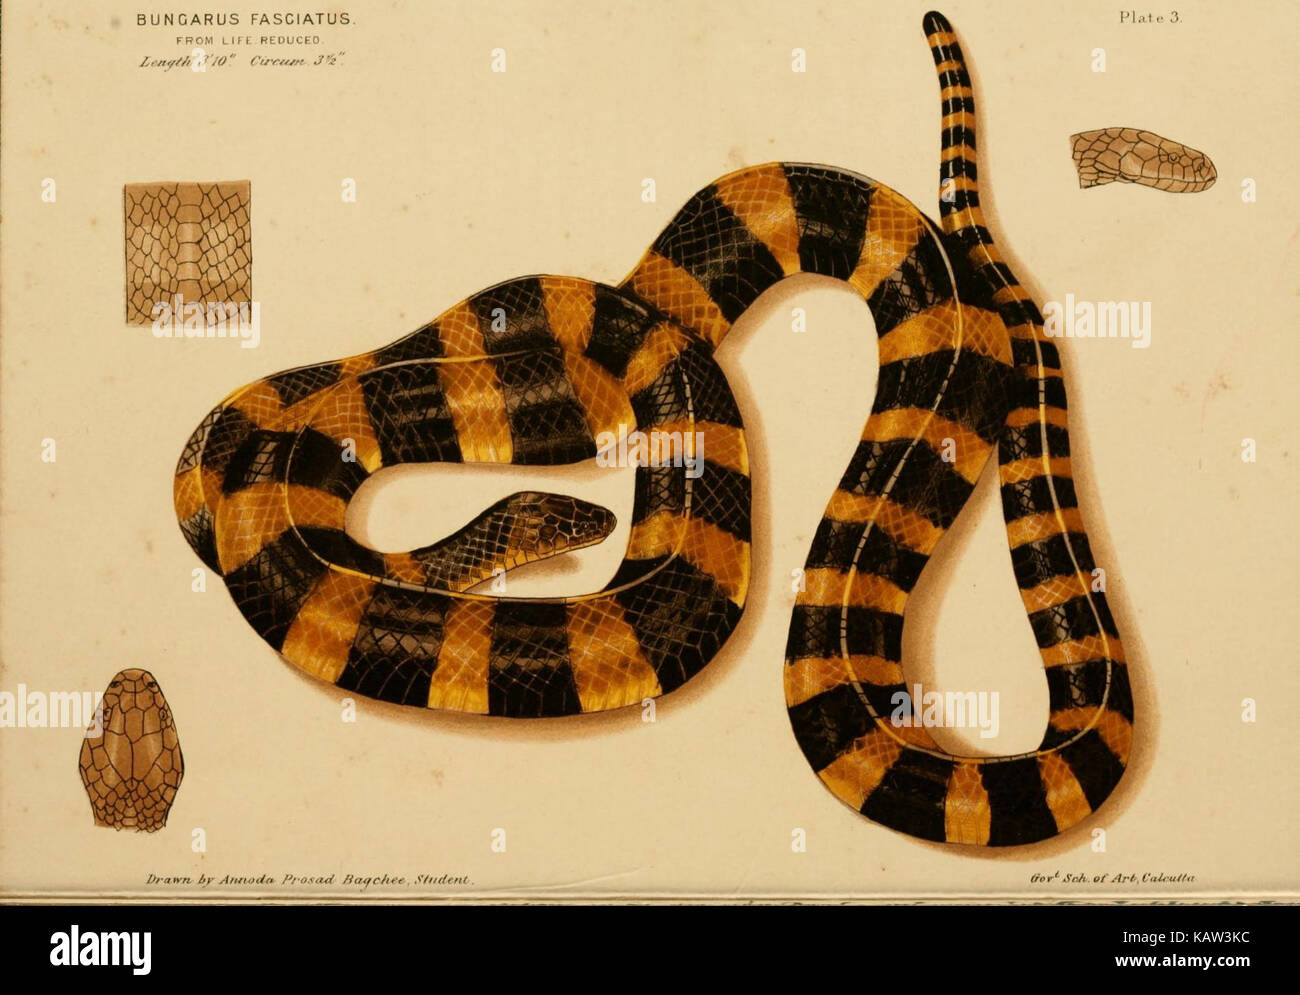 Snakes India Stock Photos & Snakes India Stock Images - Page 5 - Alamy